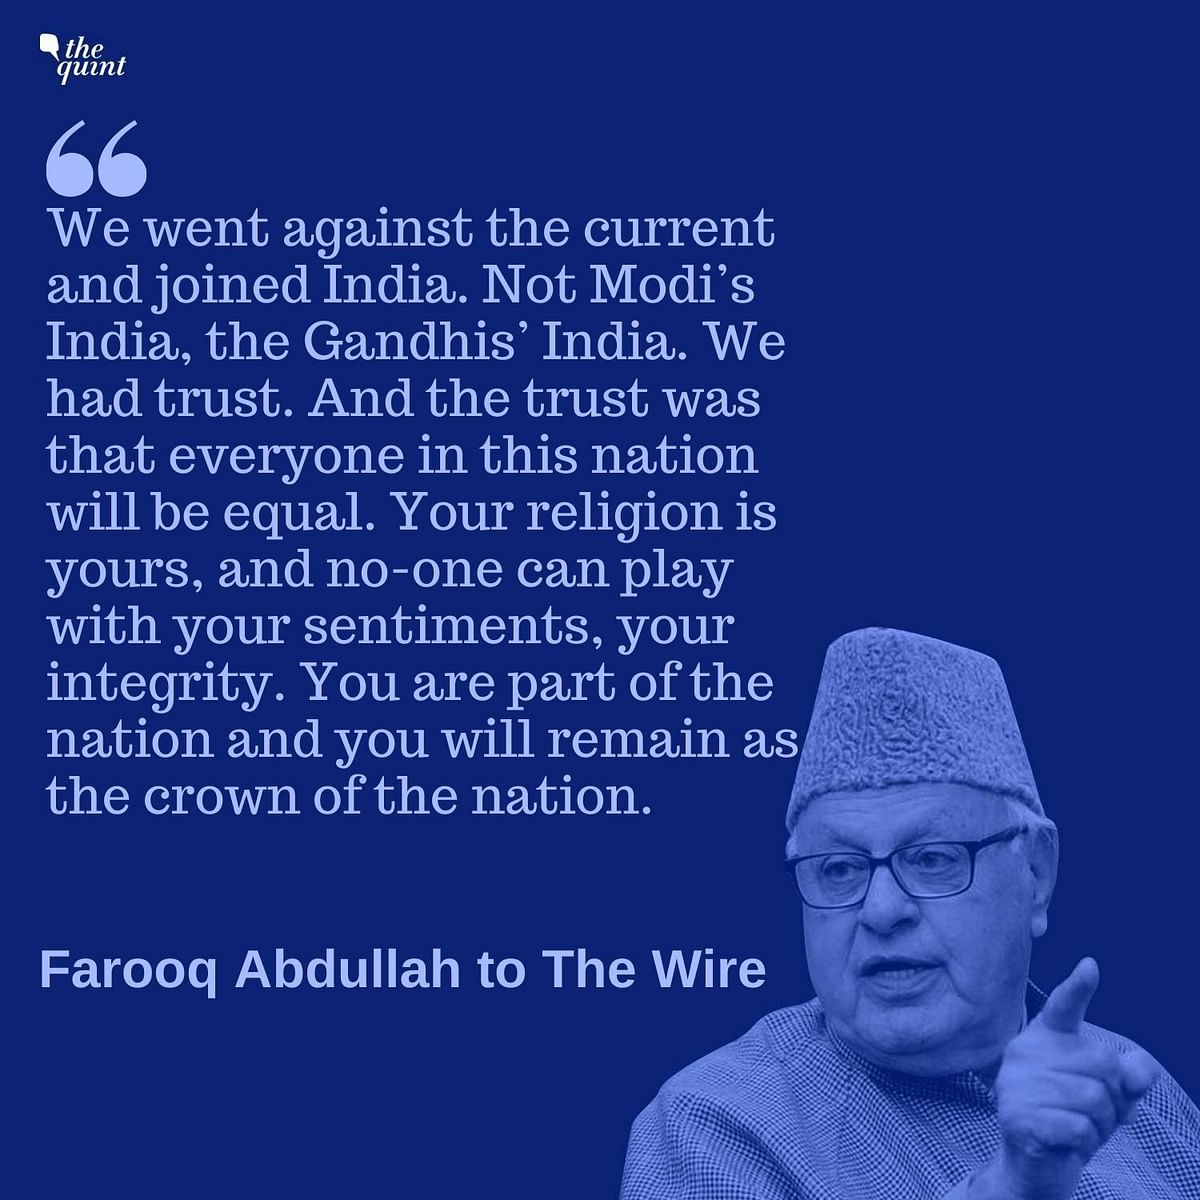 India Has Lost the Trust of Kashmiris: Farooq Abdullah to The Wire